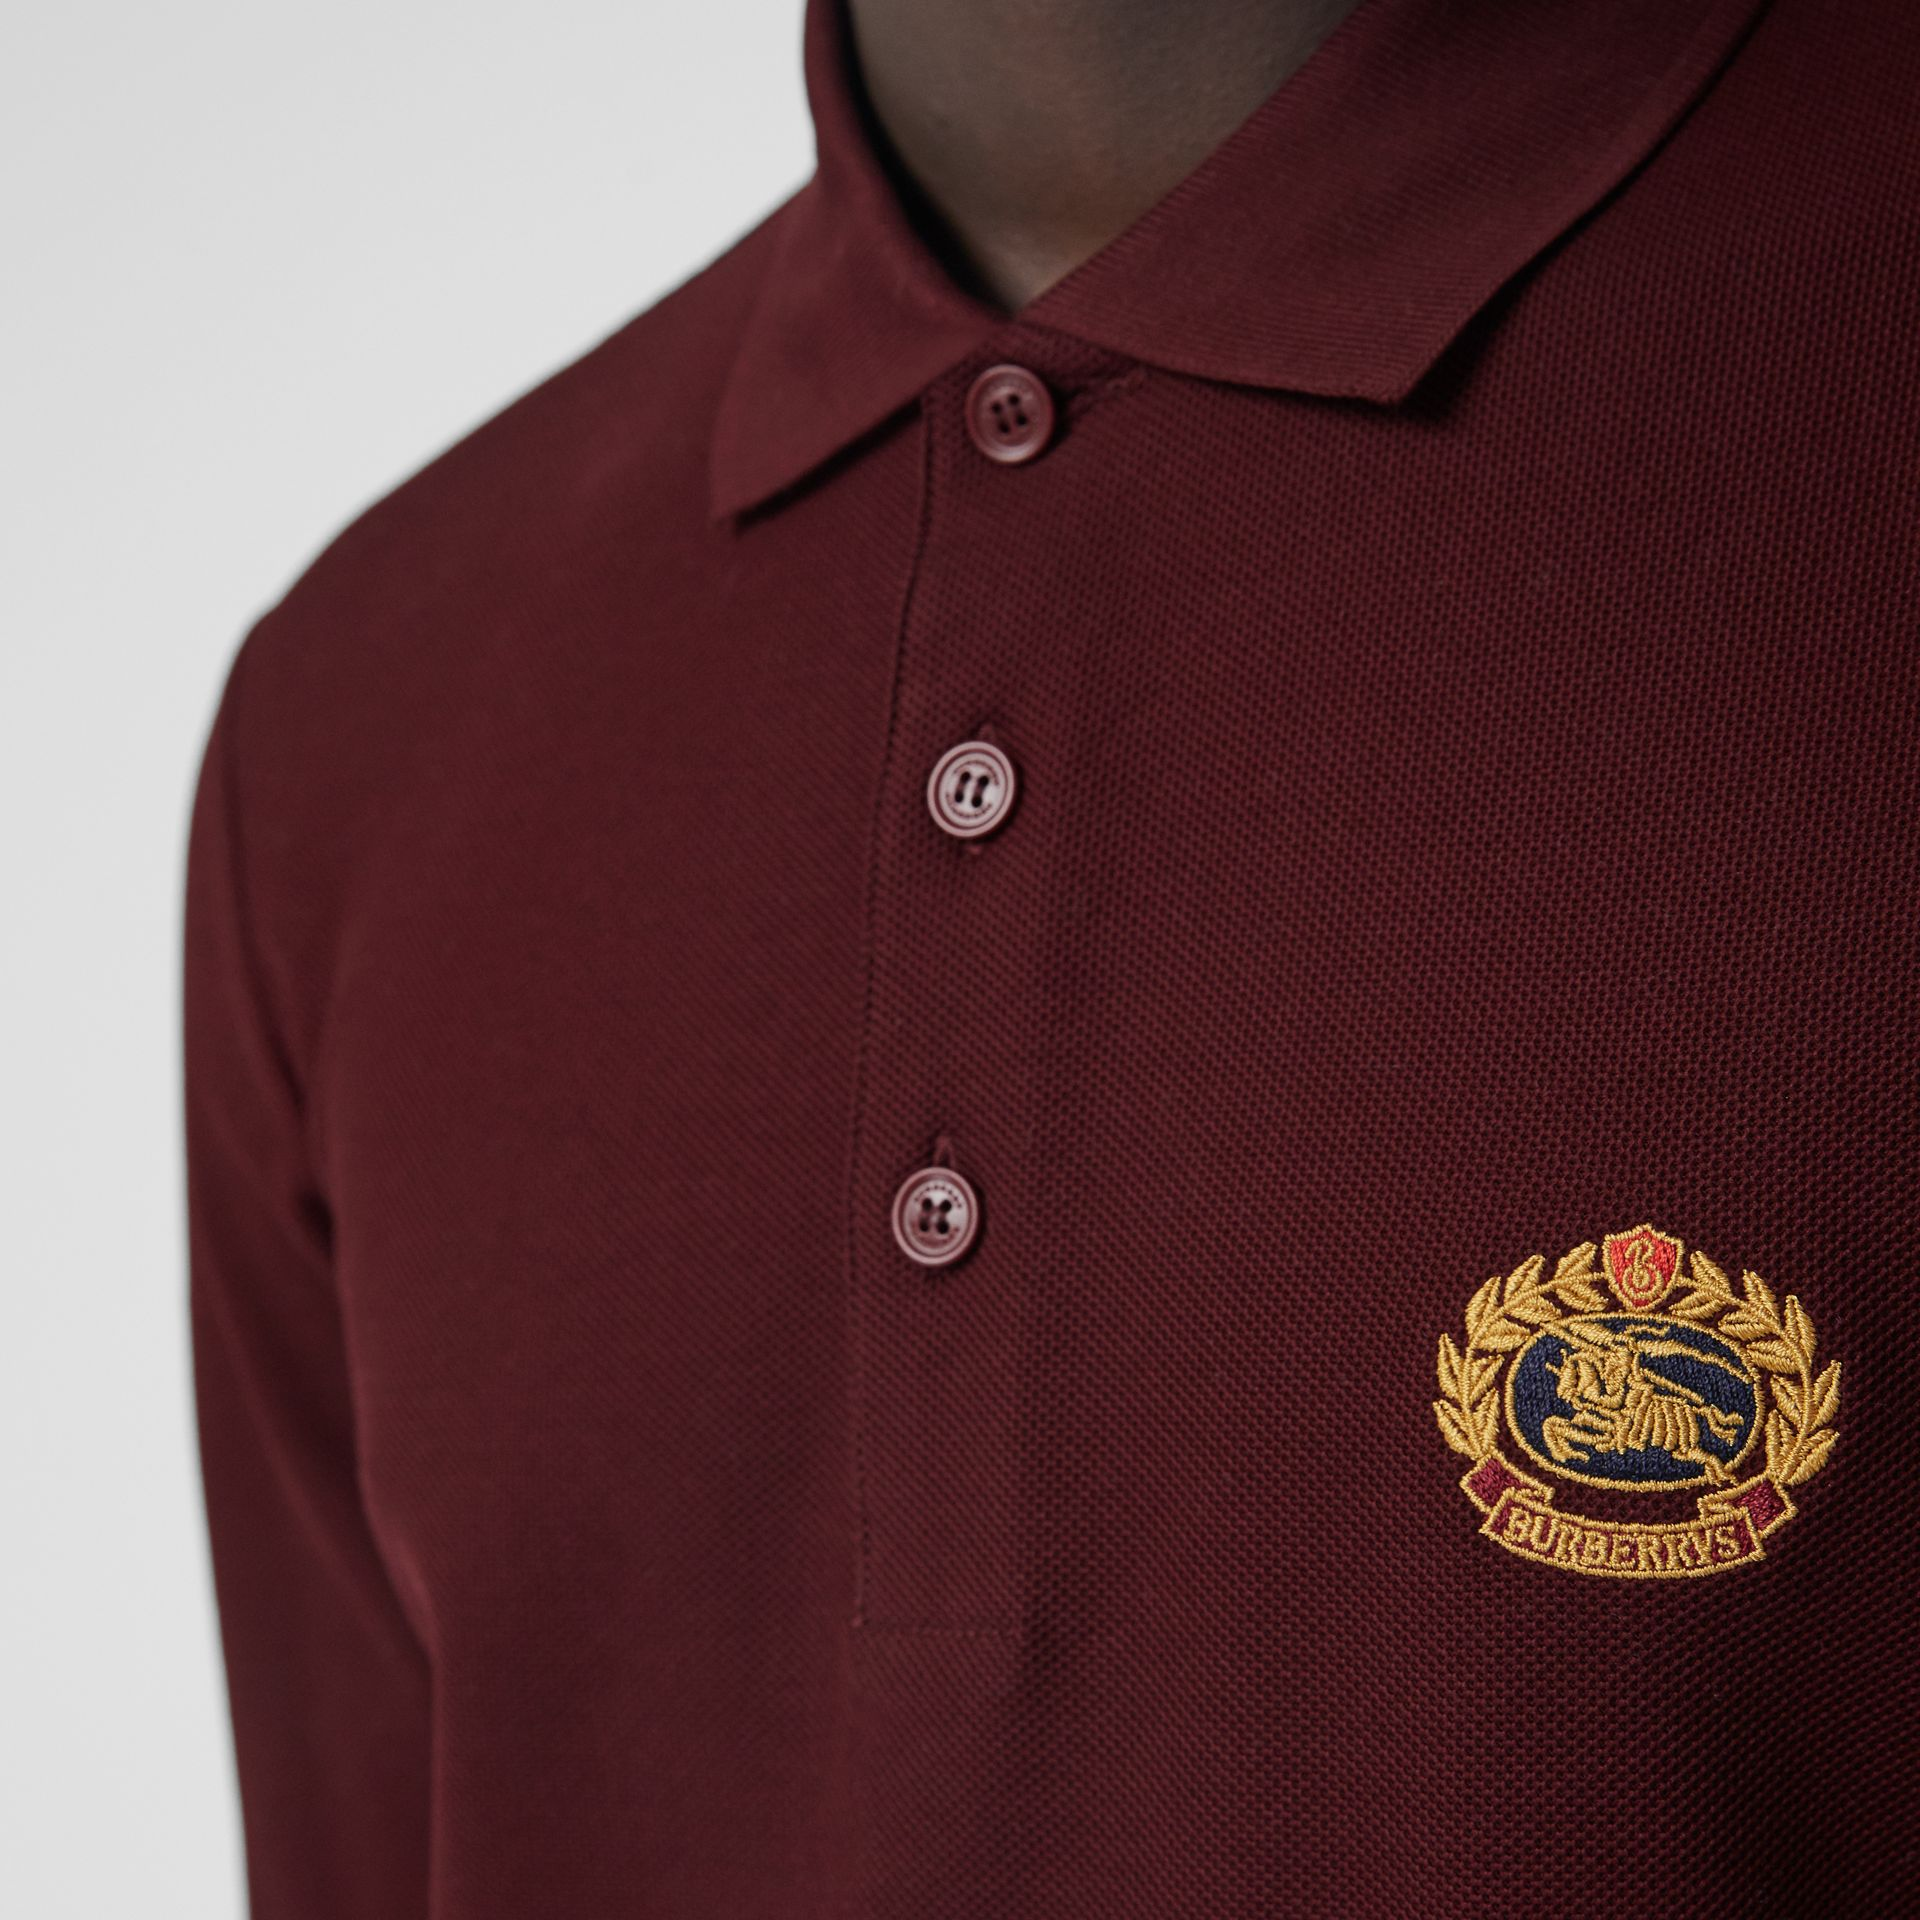 Long-sleeve Archive Logo Cotton Piqué Polo Shirt in Burgundy - Men | Burberry United States - gallery image 1